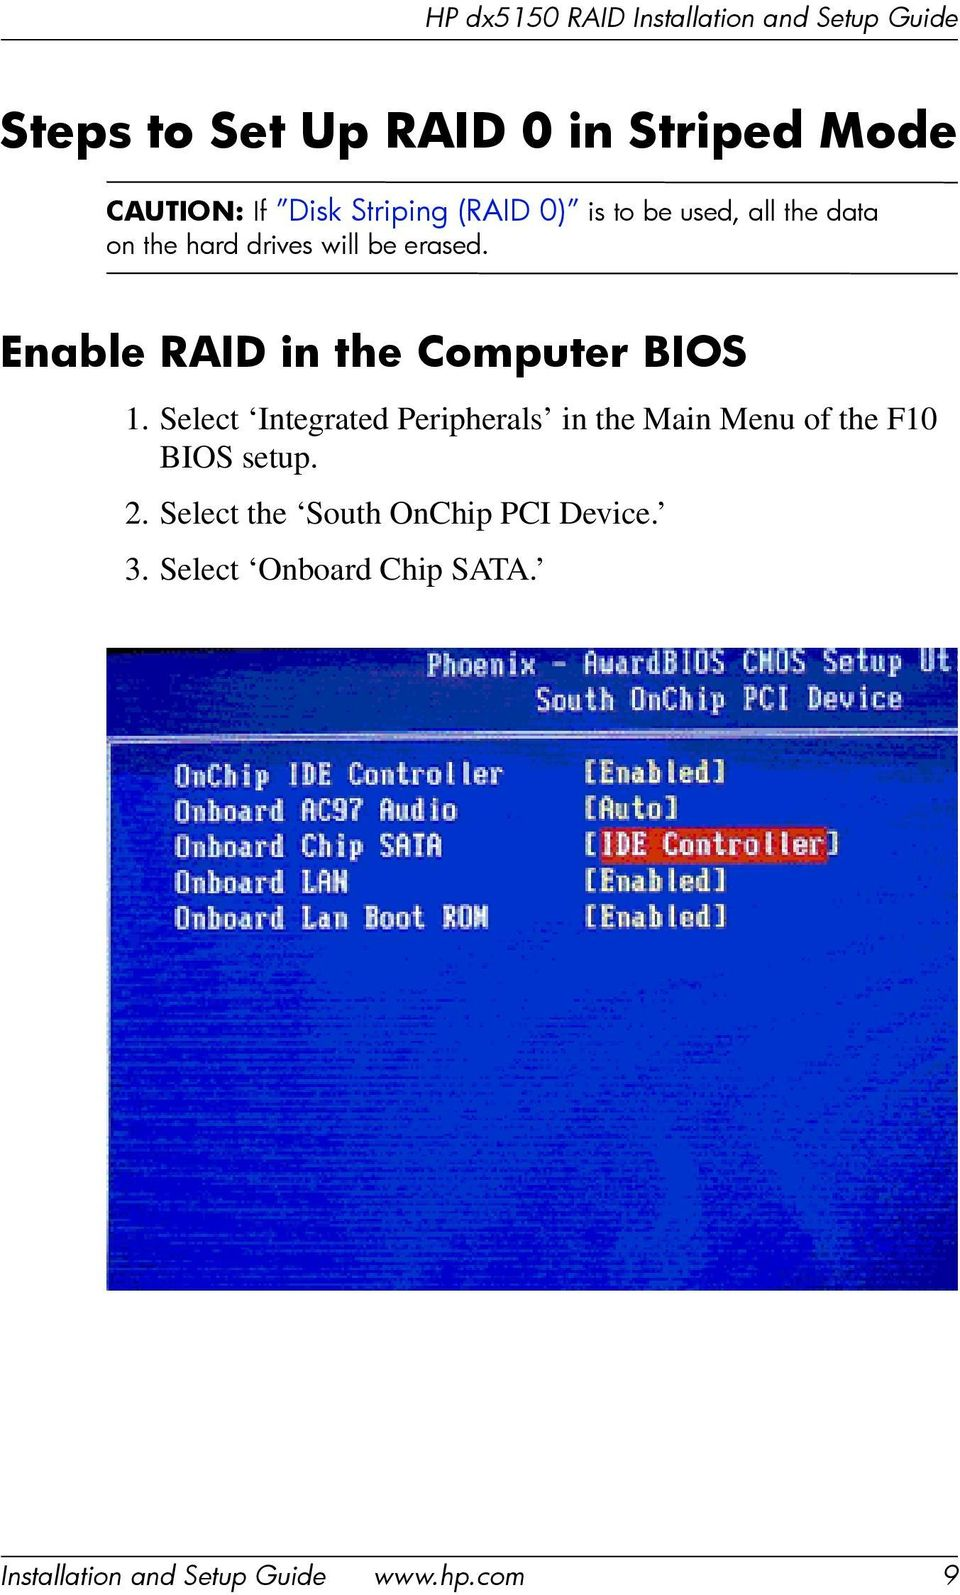 HP dx5150 RAID Installation and Setup Guide Version Document